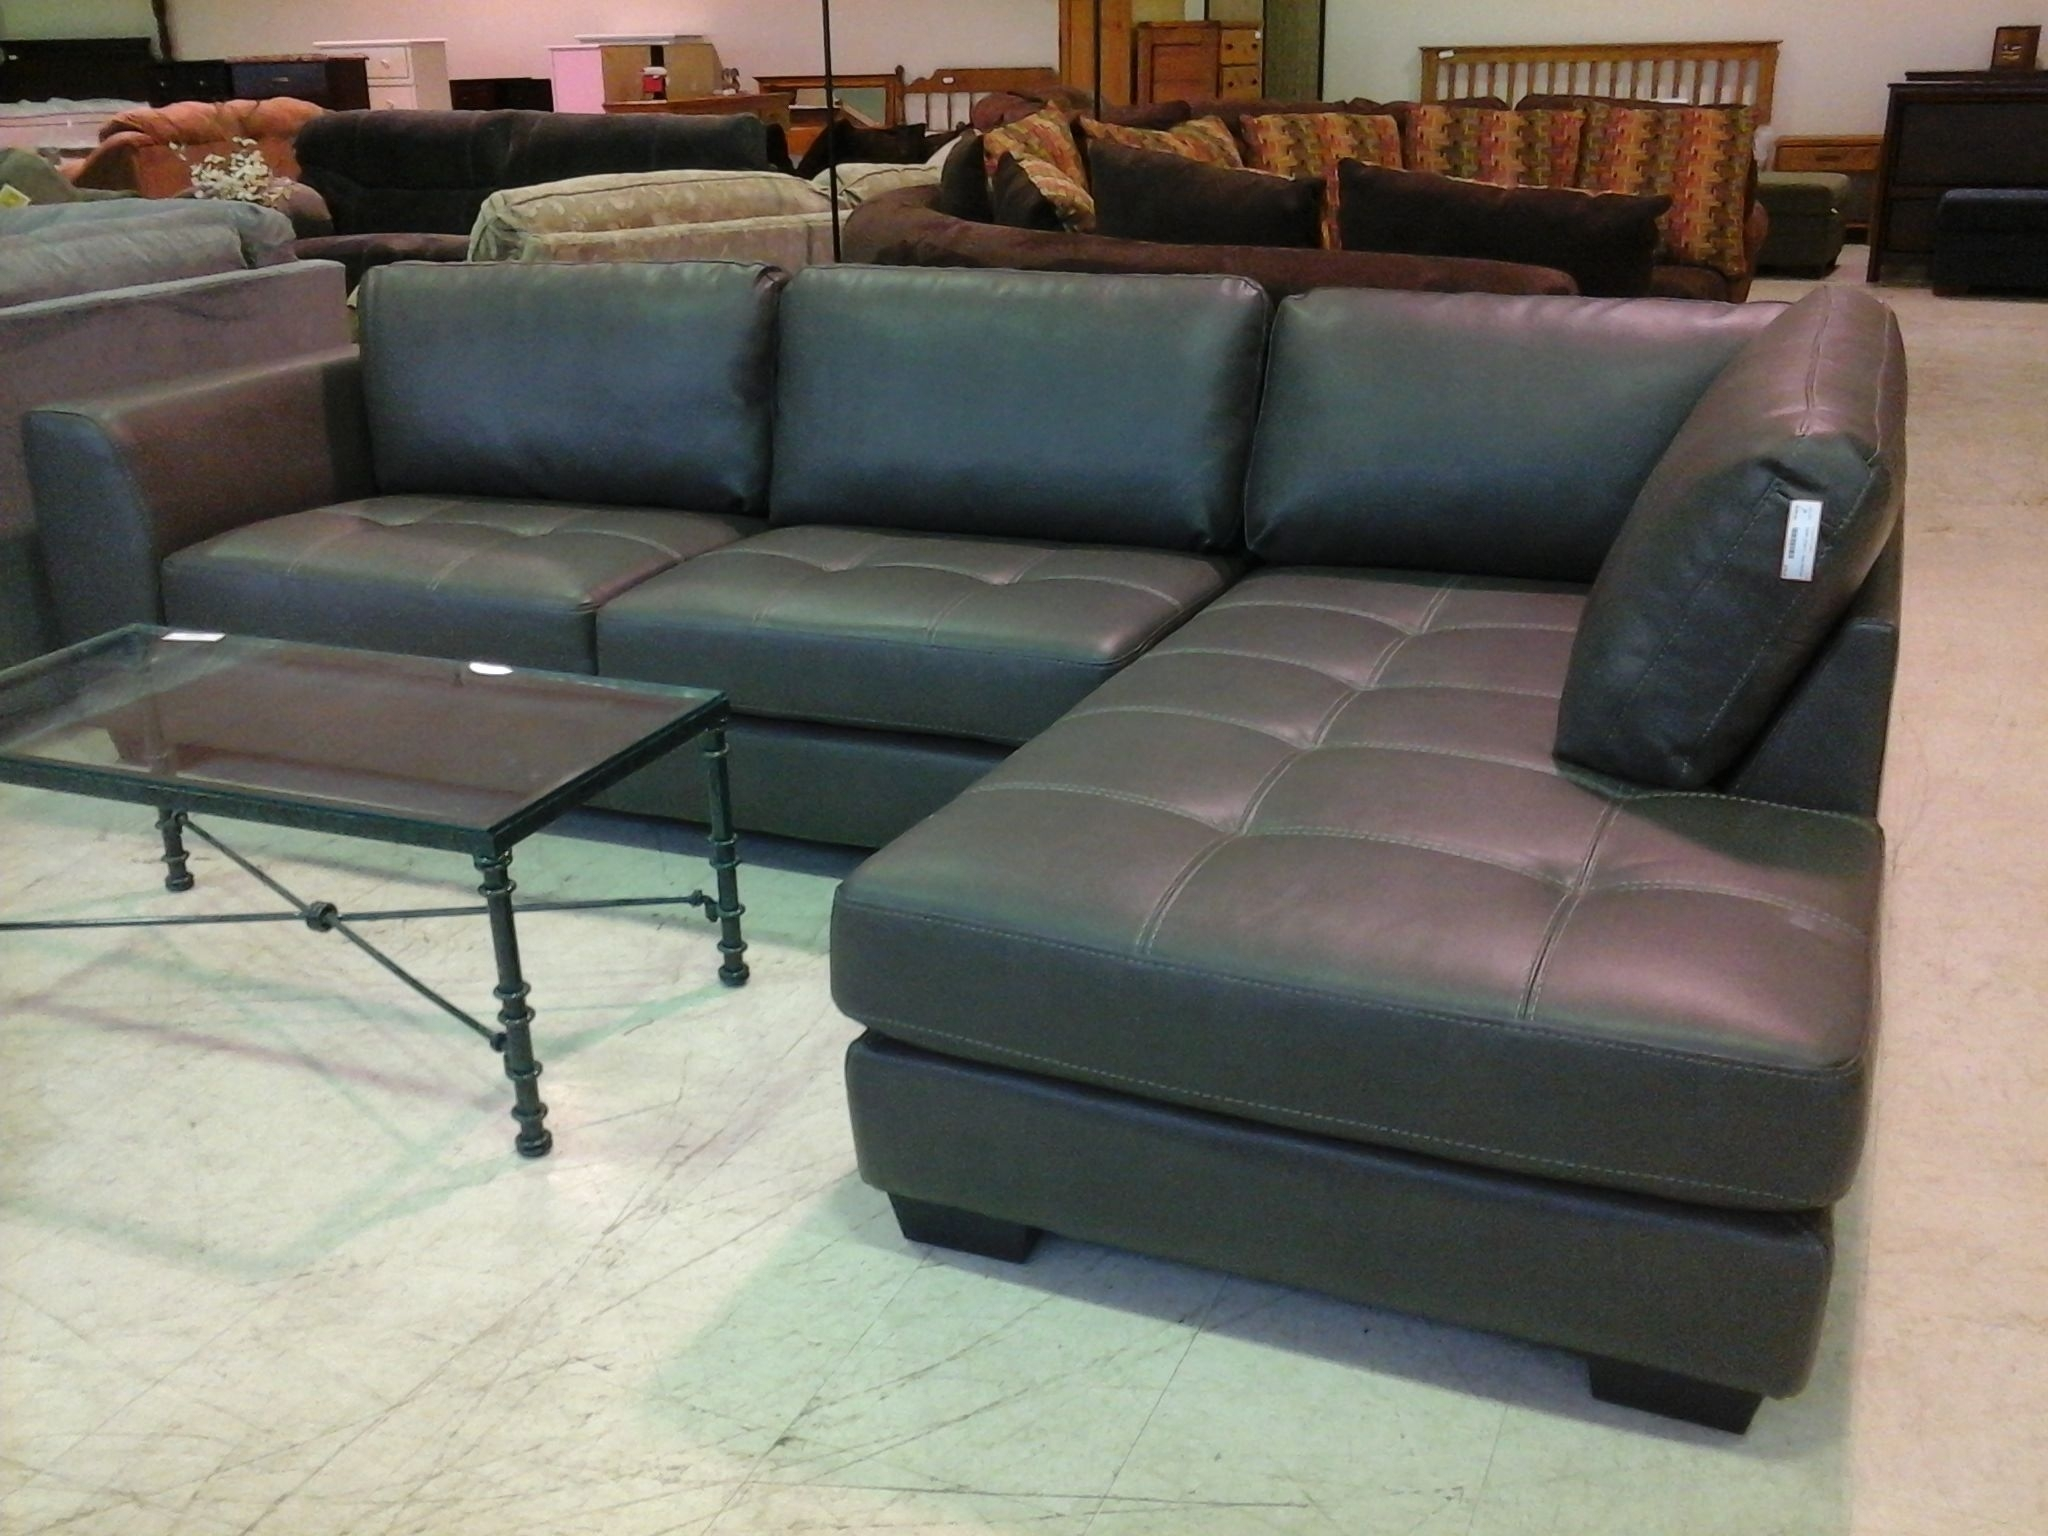 marco gray chaise sofa best way to wash cushions 10 43 choices of craftsman sectional sofas ideas